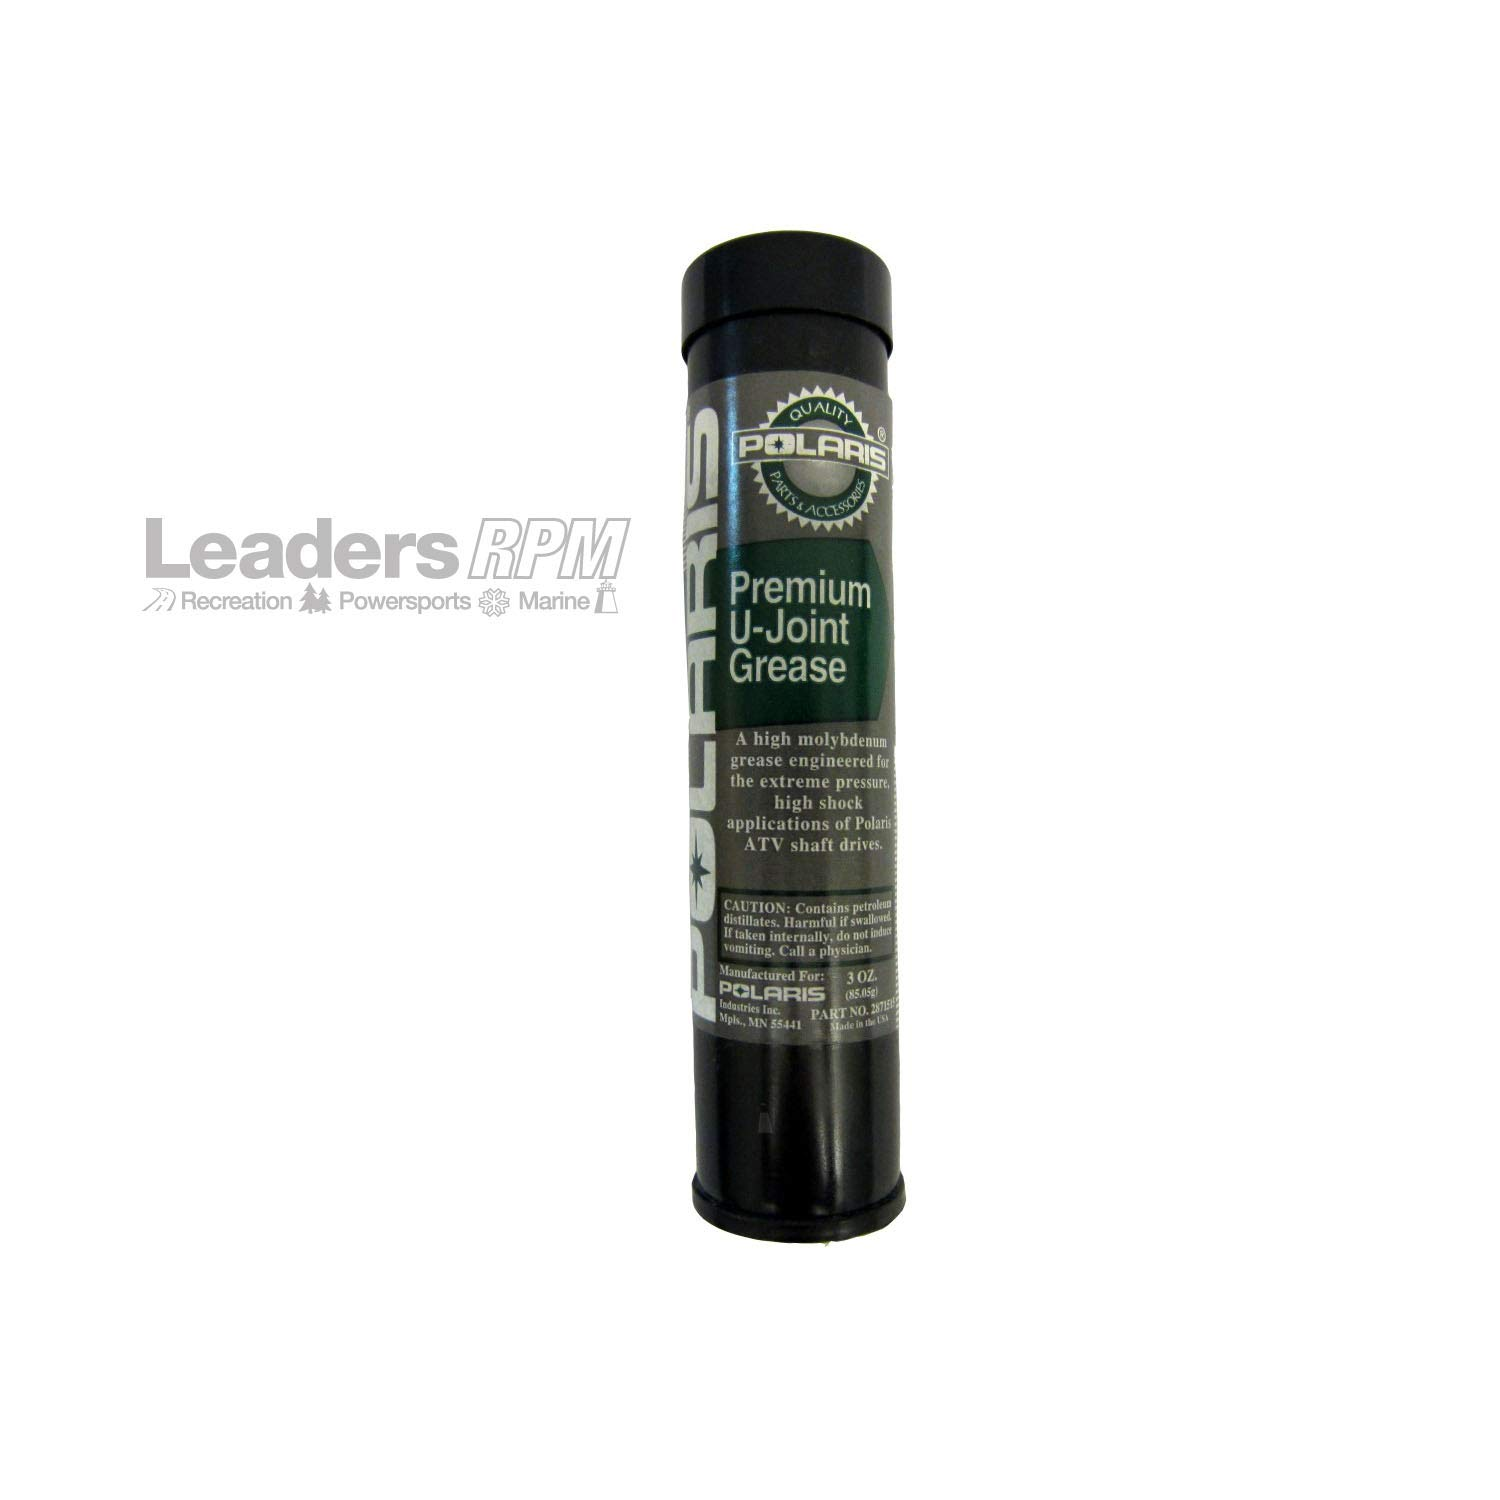 Pure Polaris U-Joint Grease 3 oz., Part Number 2871515